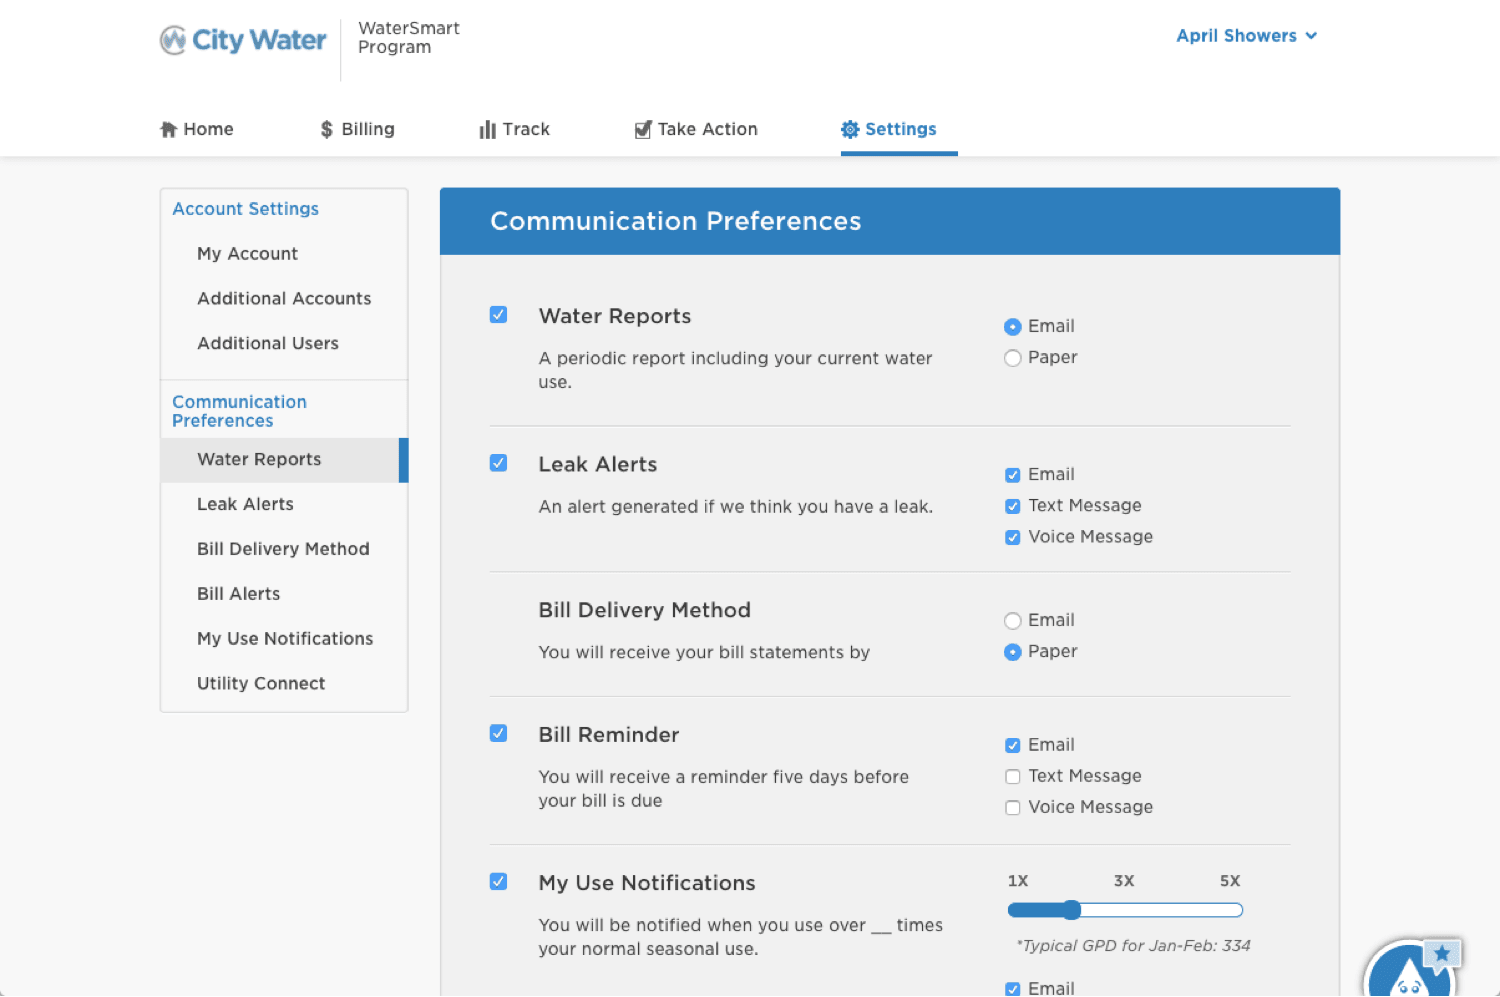 Communication Preferences Page